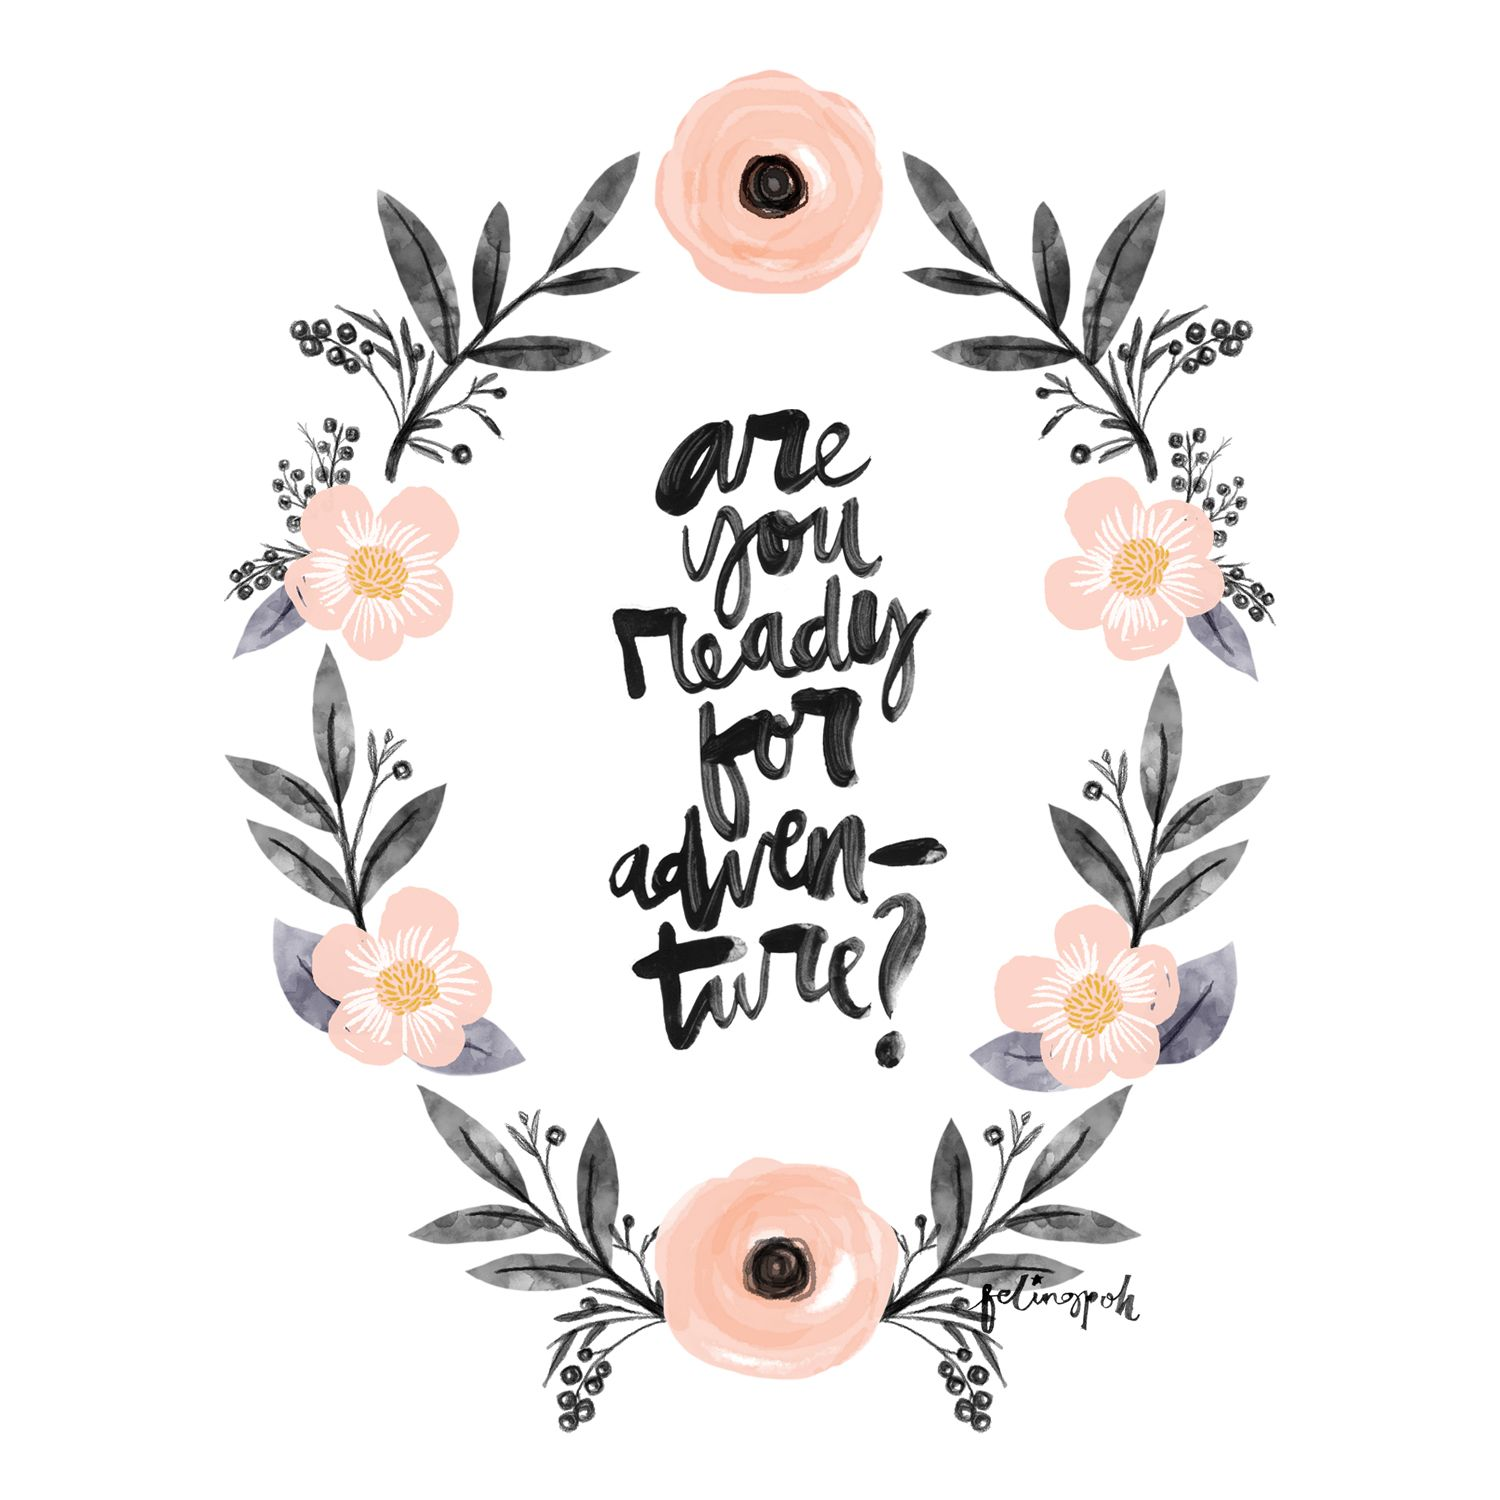 Quot are you ready for adventure calligraphy flowers wreath